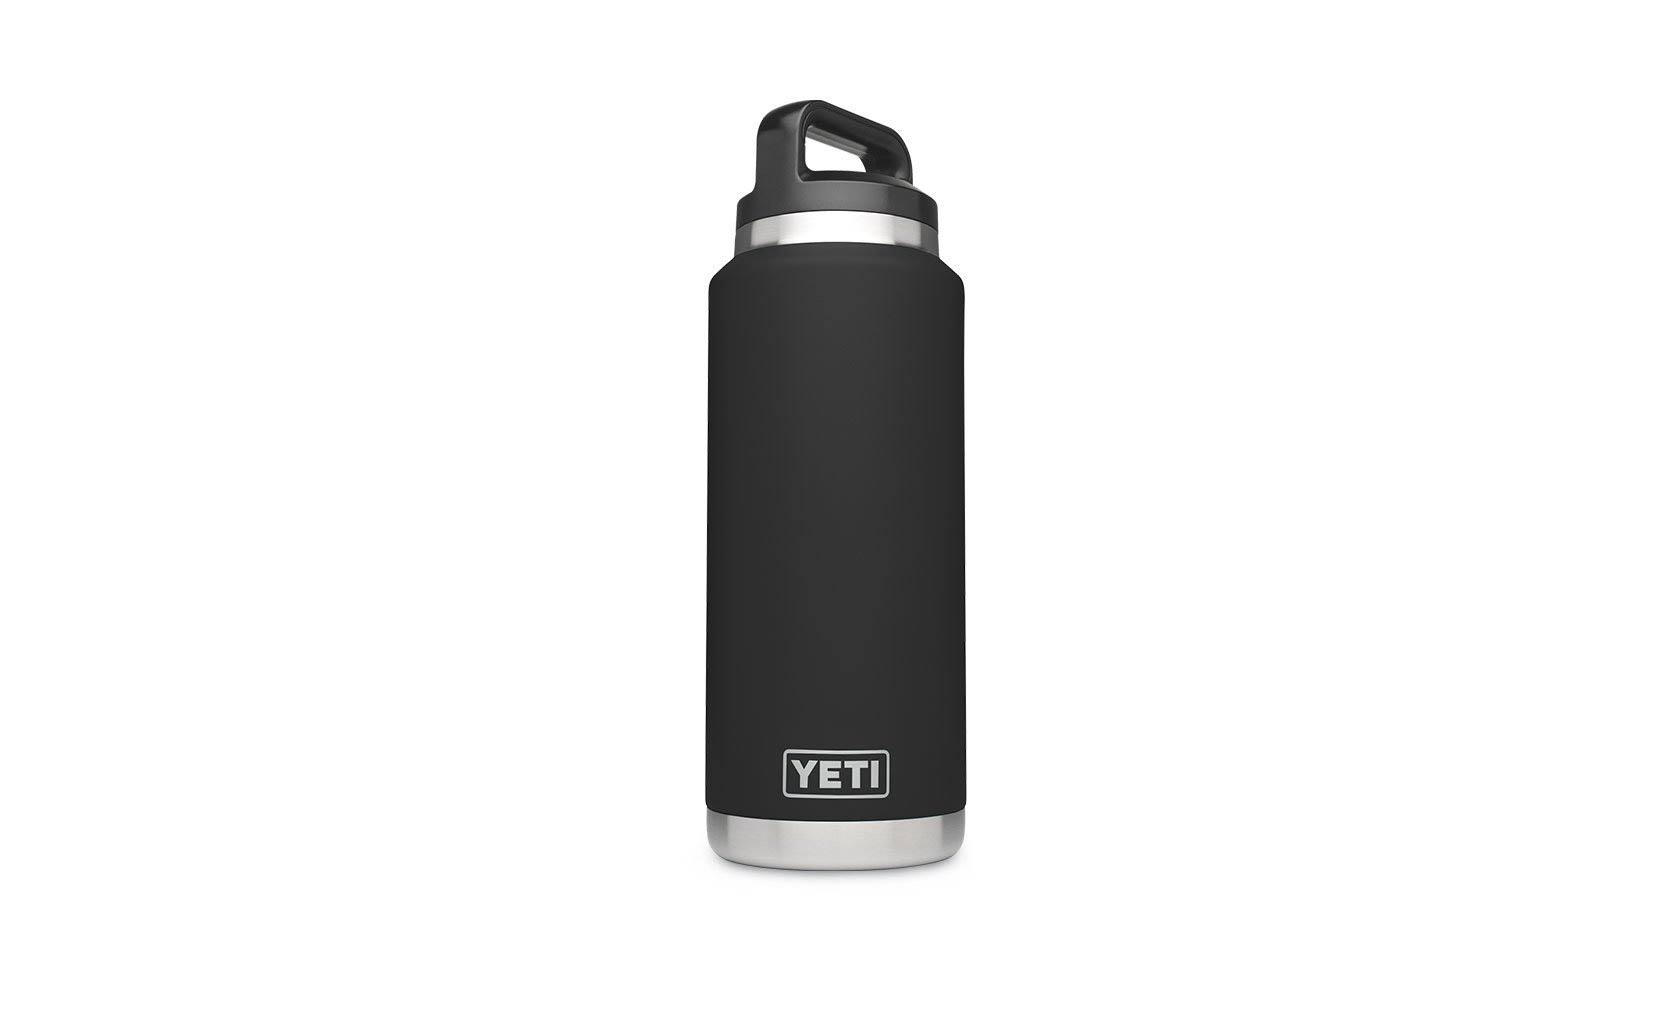 Yeti Rambler Vacuum Insulated Bottle - Black, 36oz